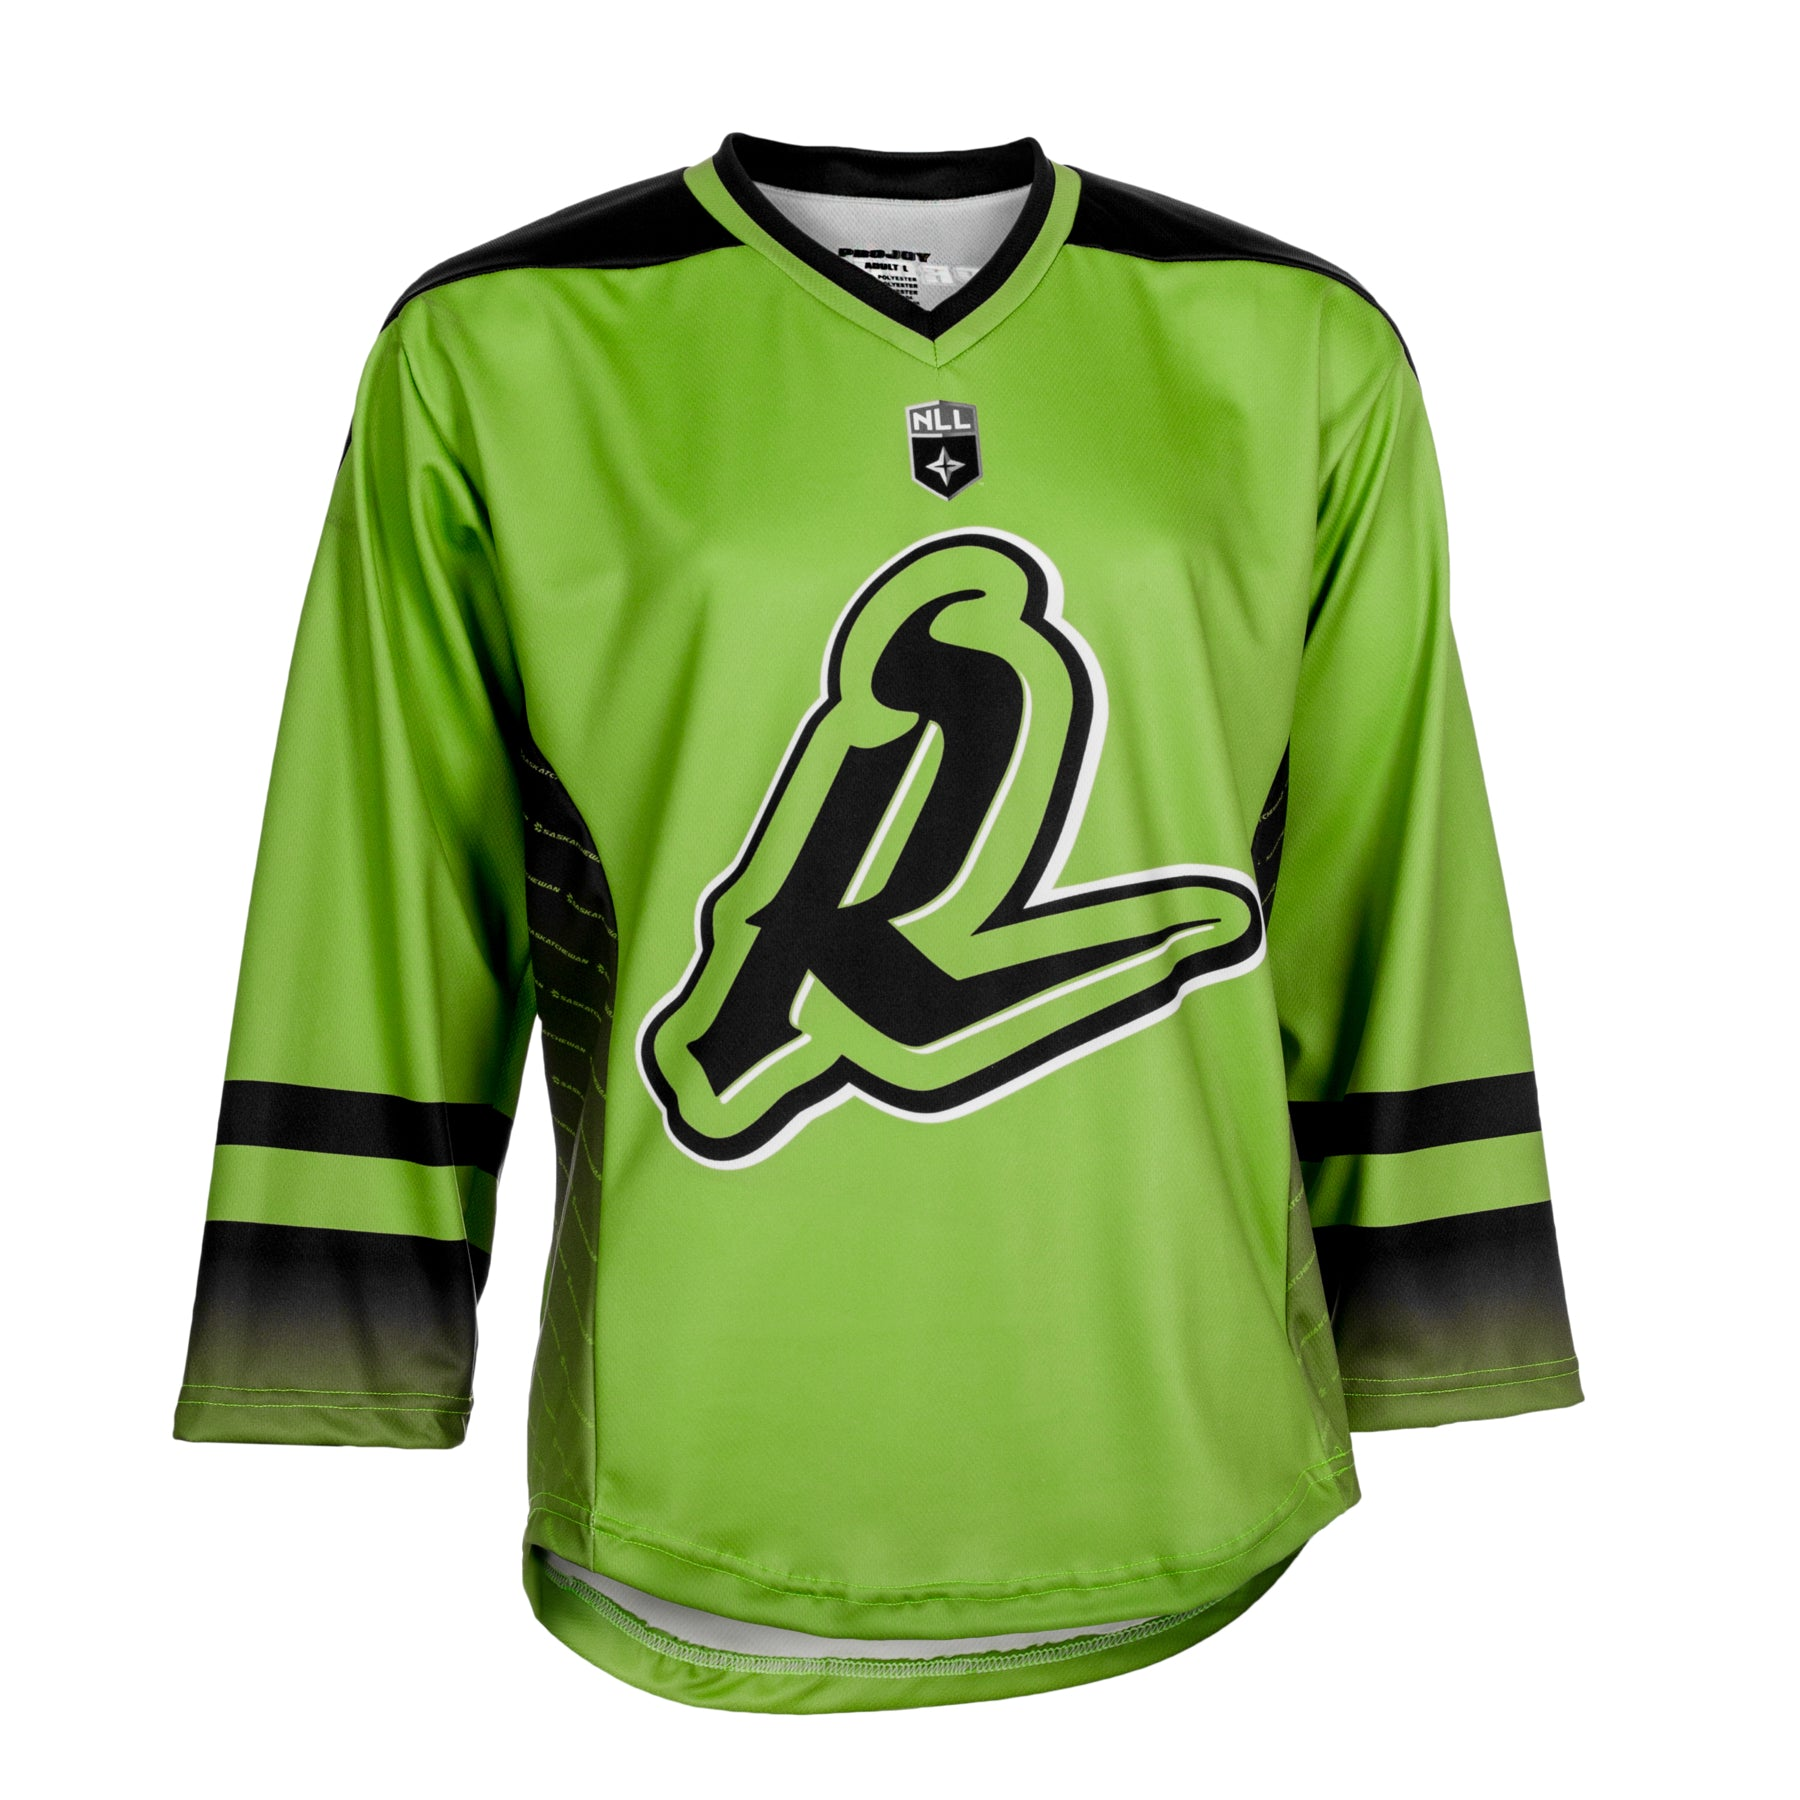 Replica Adult #13 Jeff Cornwall Jersey - 2018 - Lime